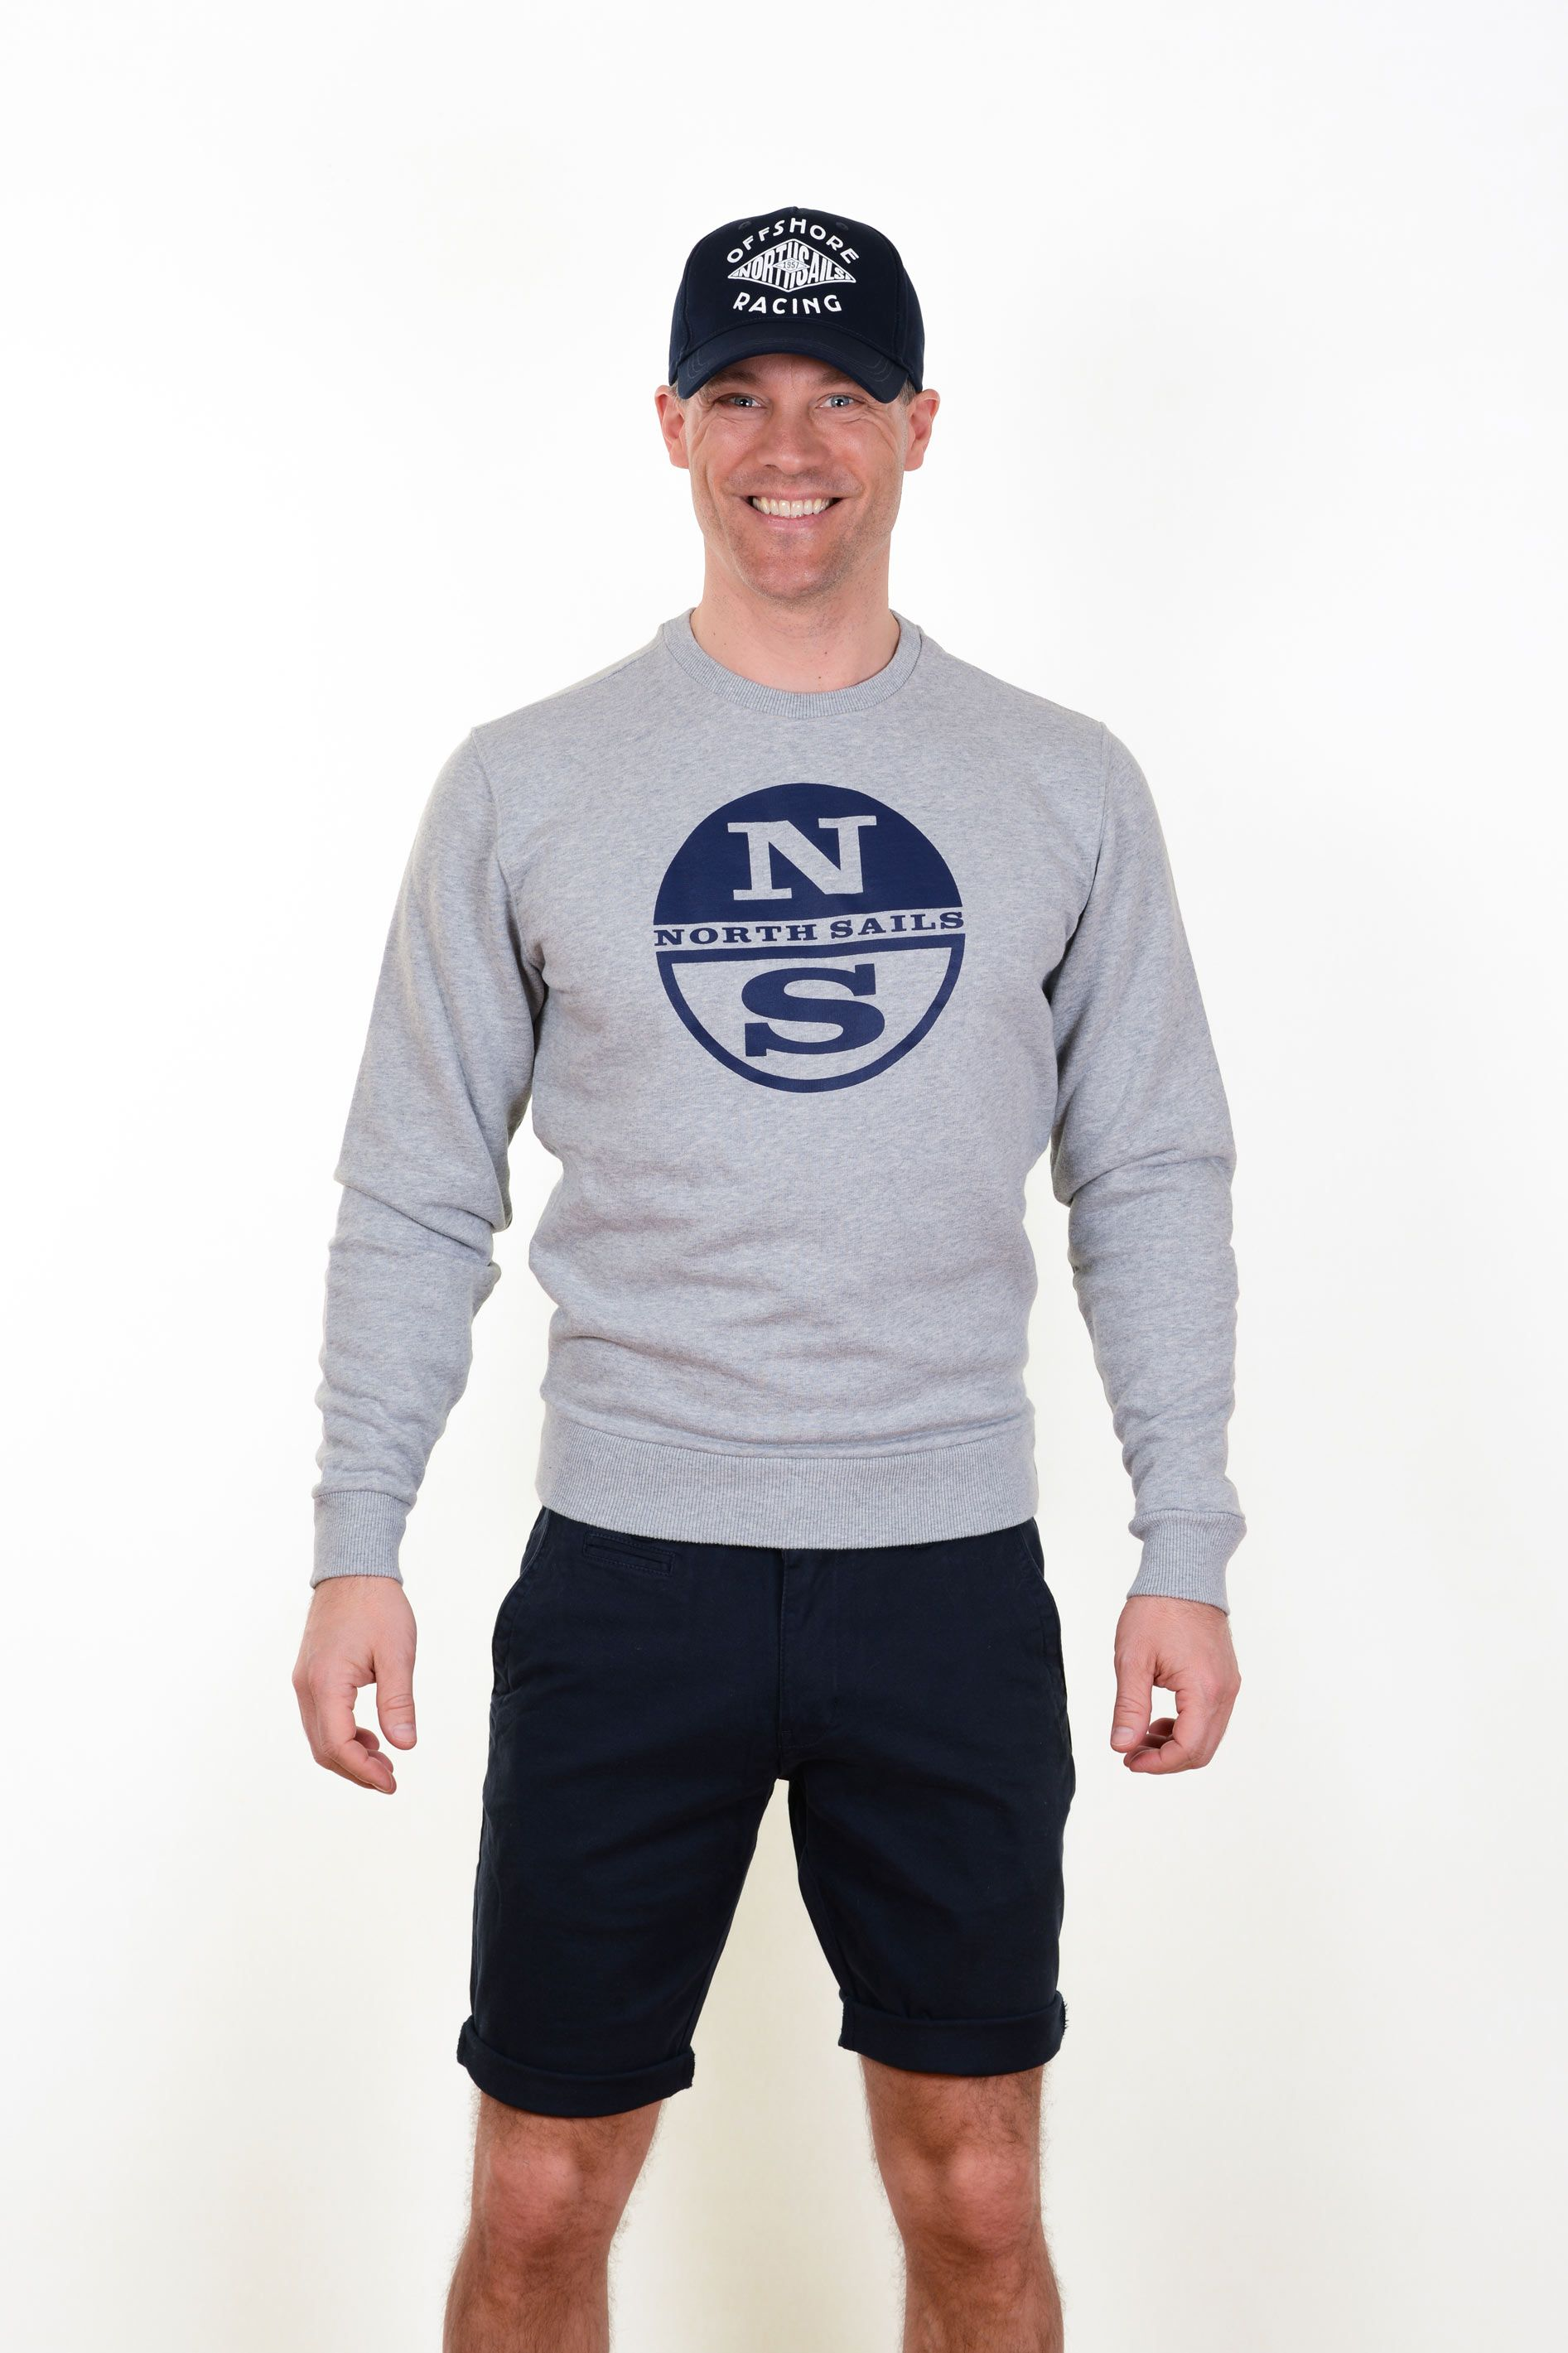 Poloshow sweater NorthSails Grey 6919740000926 6